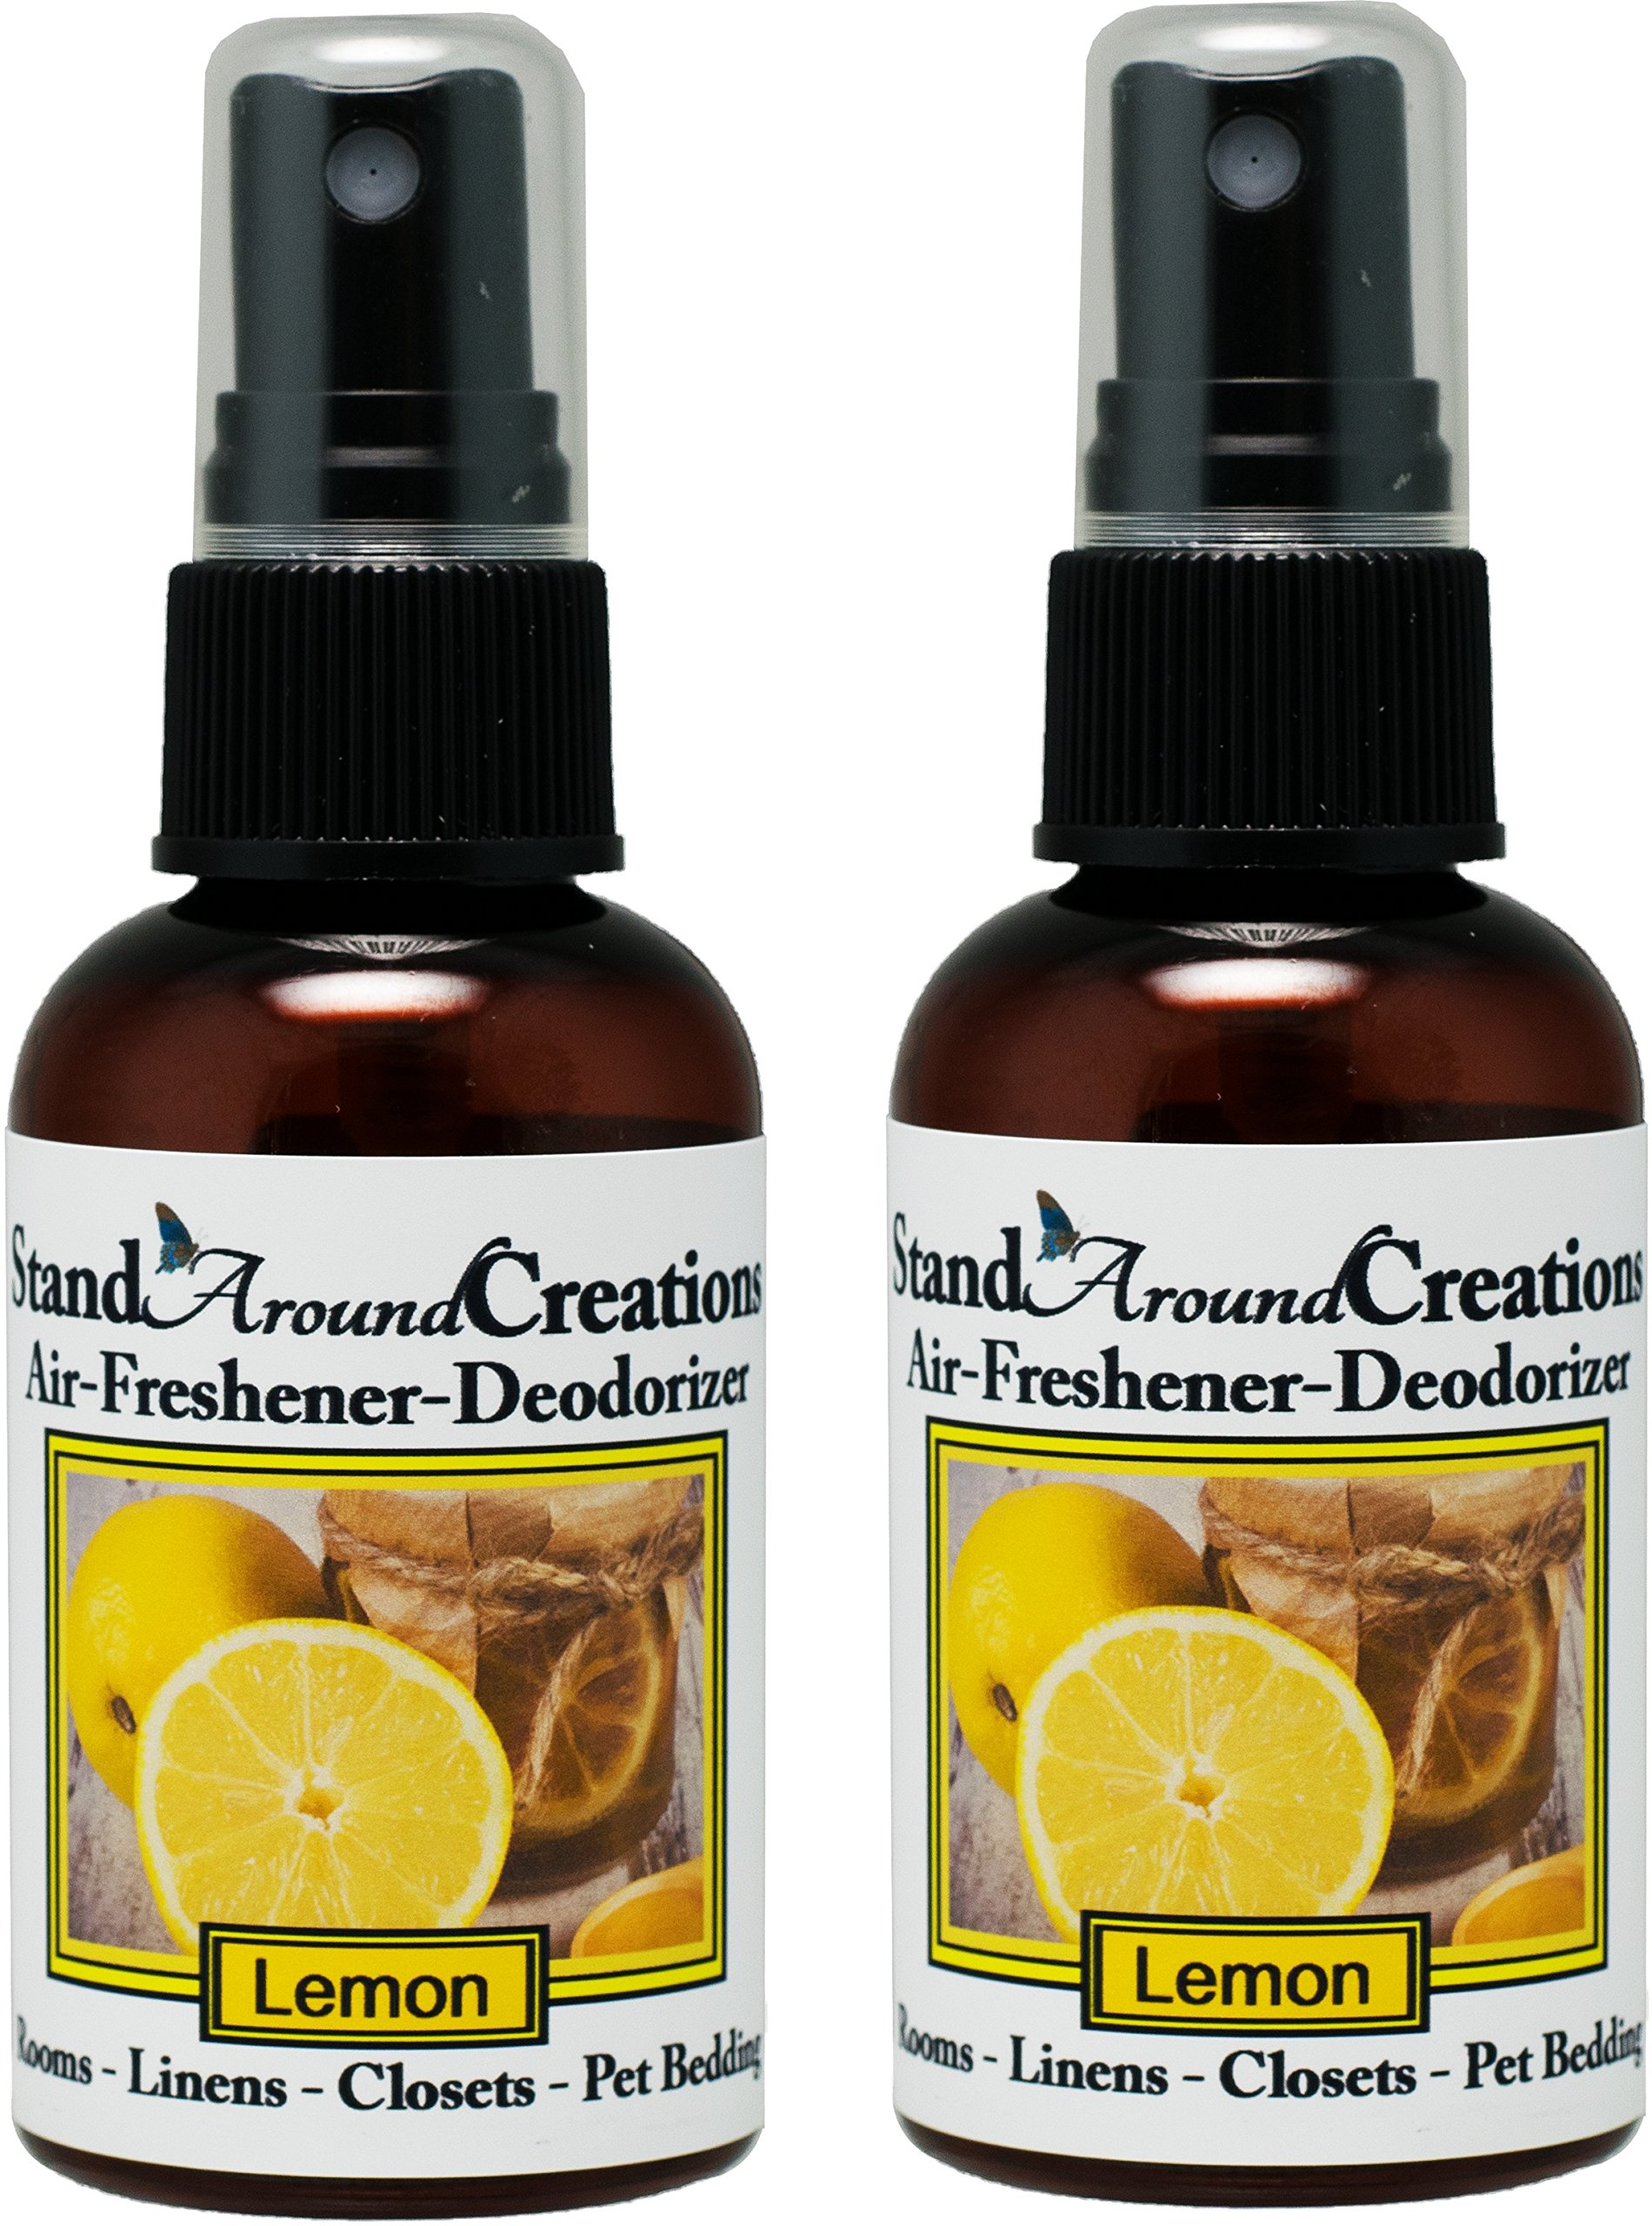 Set of 2 - Concentrated Spray For Room / Linen / Room Deodorizer / Air Freshener - 2 fl oz - Scent - Lemon: A Vibrant citrus scent. Infused w/ natural essential oils.